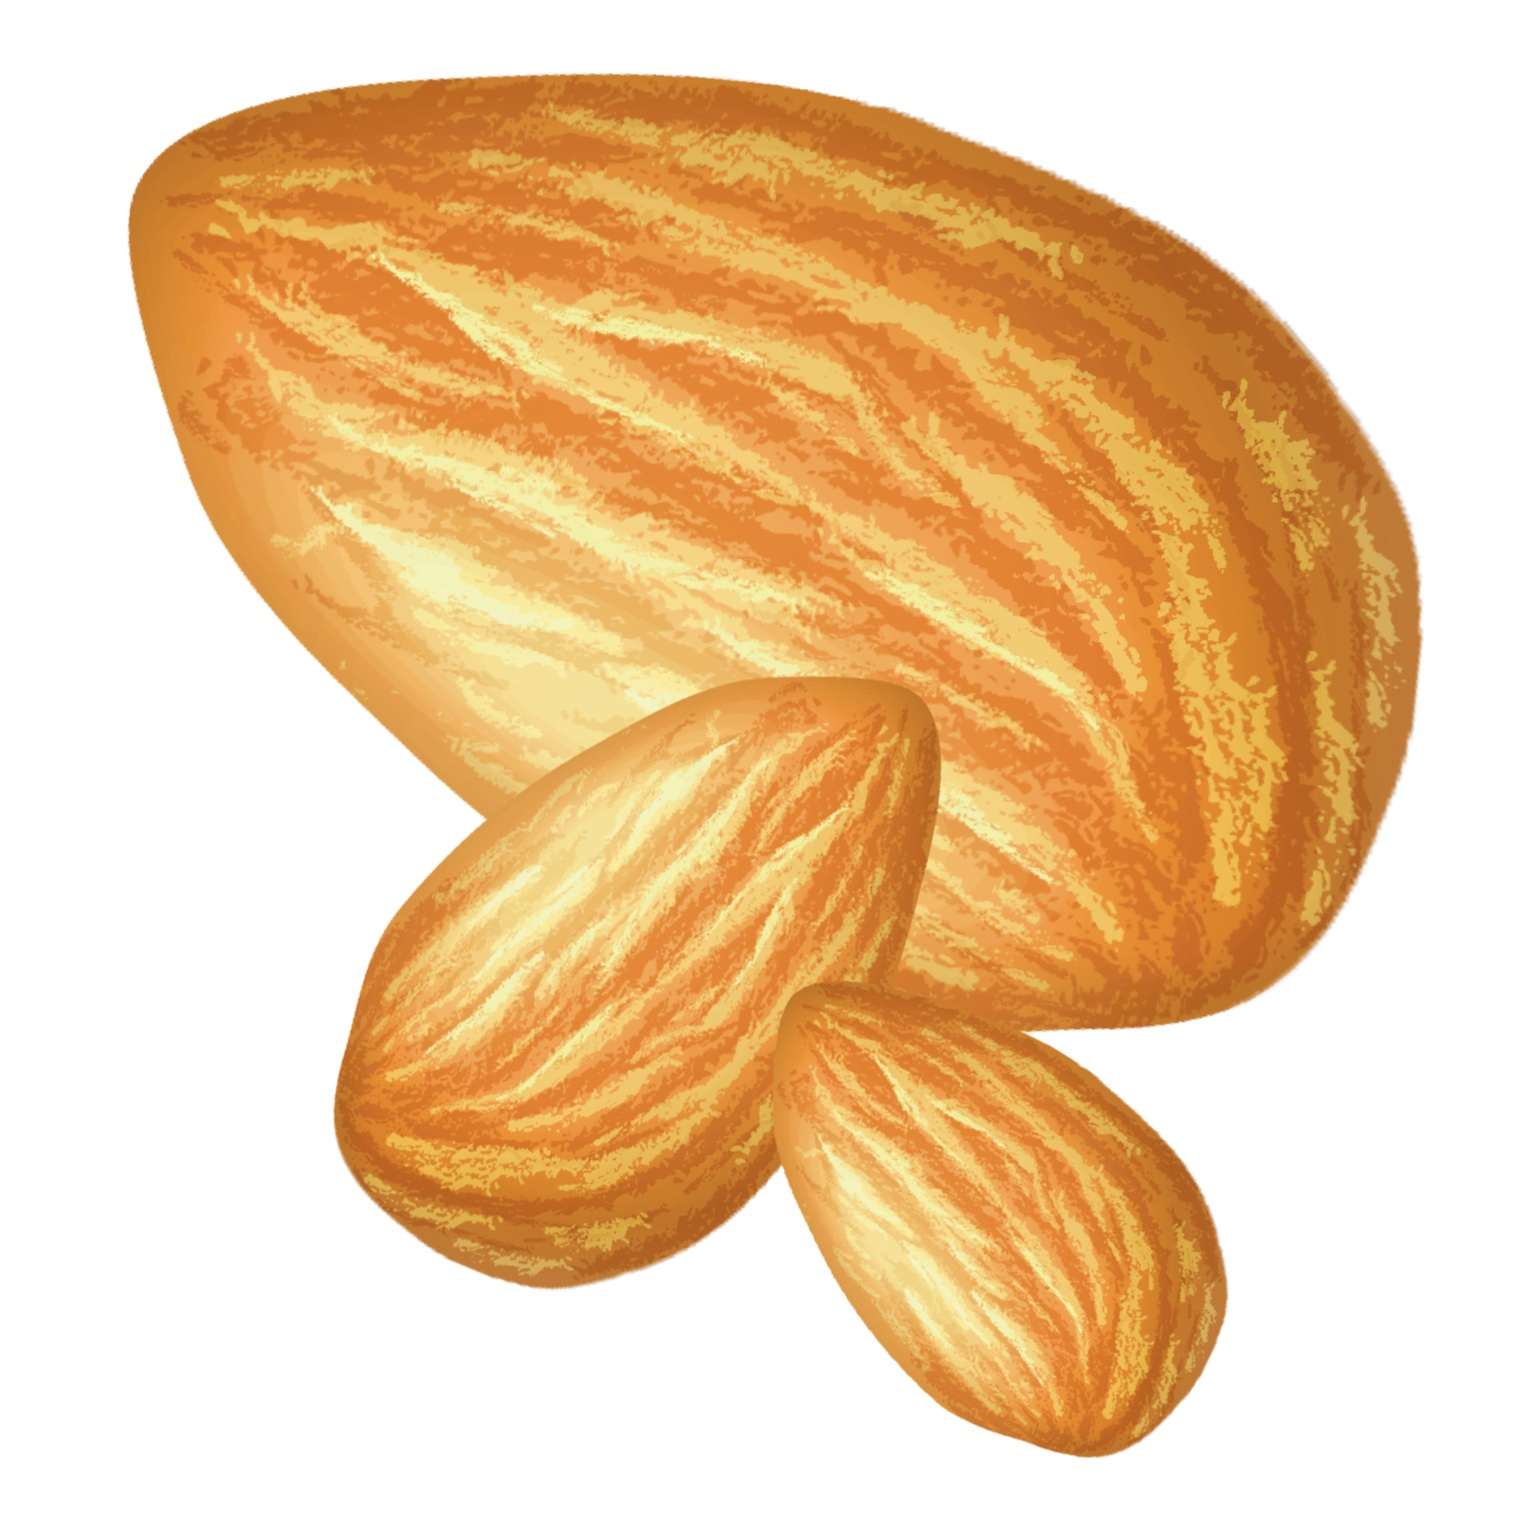 Almond+Group-01.jpg